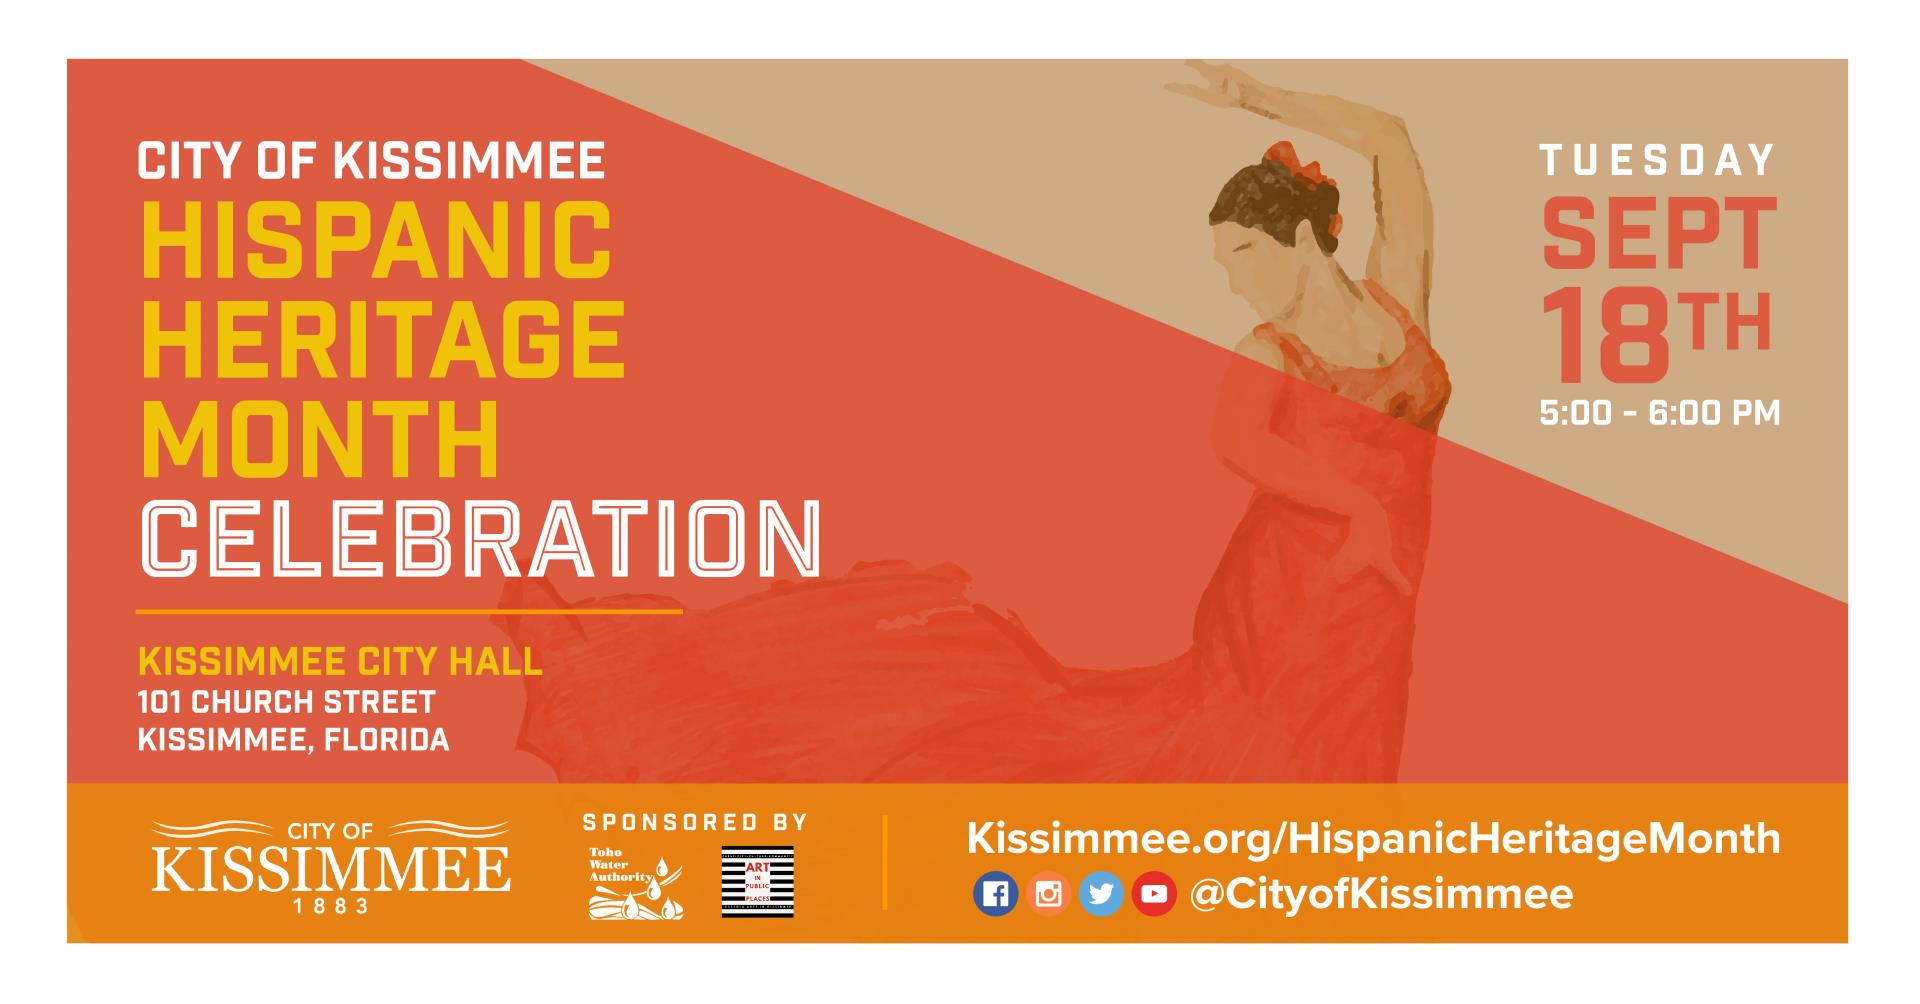 City of Kissimmee Hispanic Heritage Month Celebration_Facebook